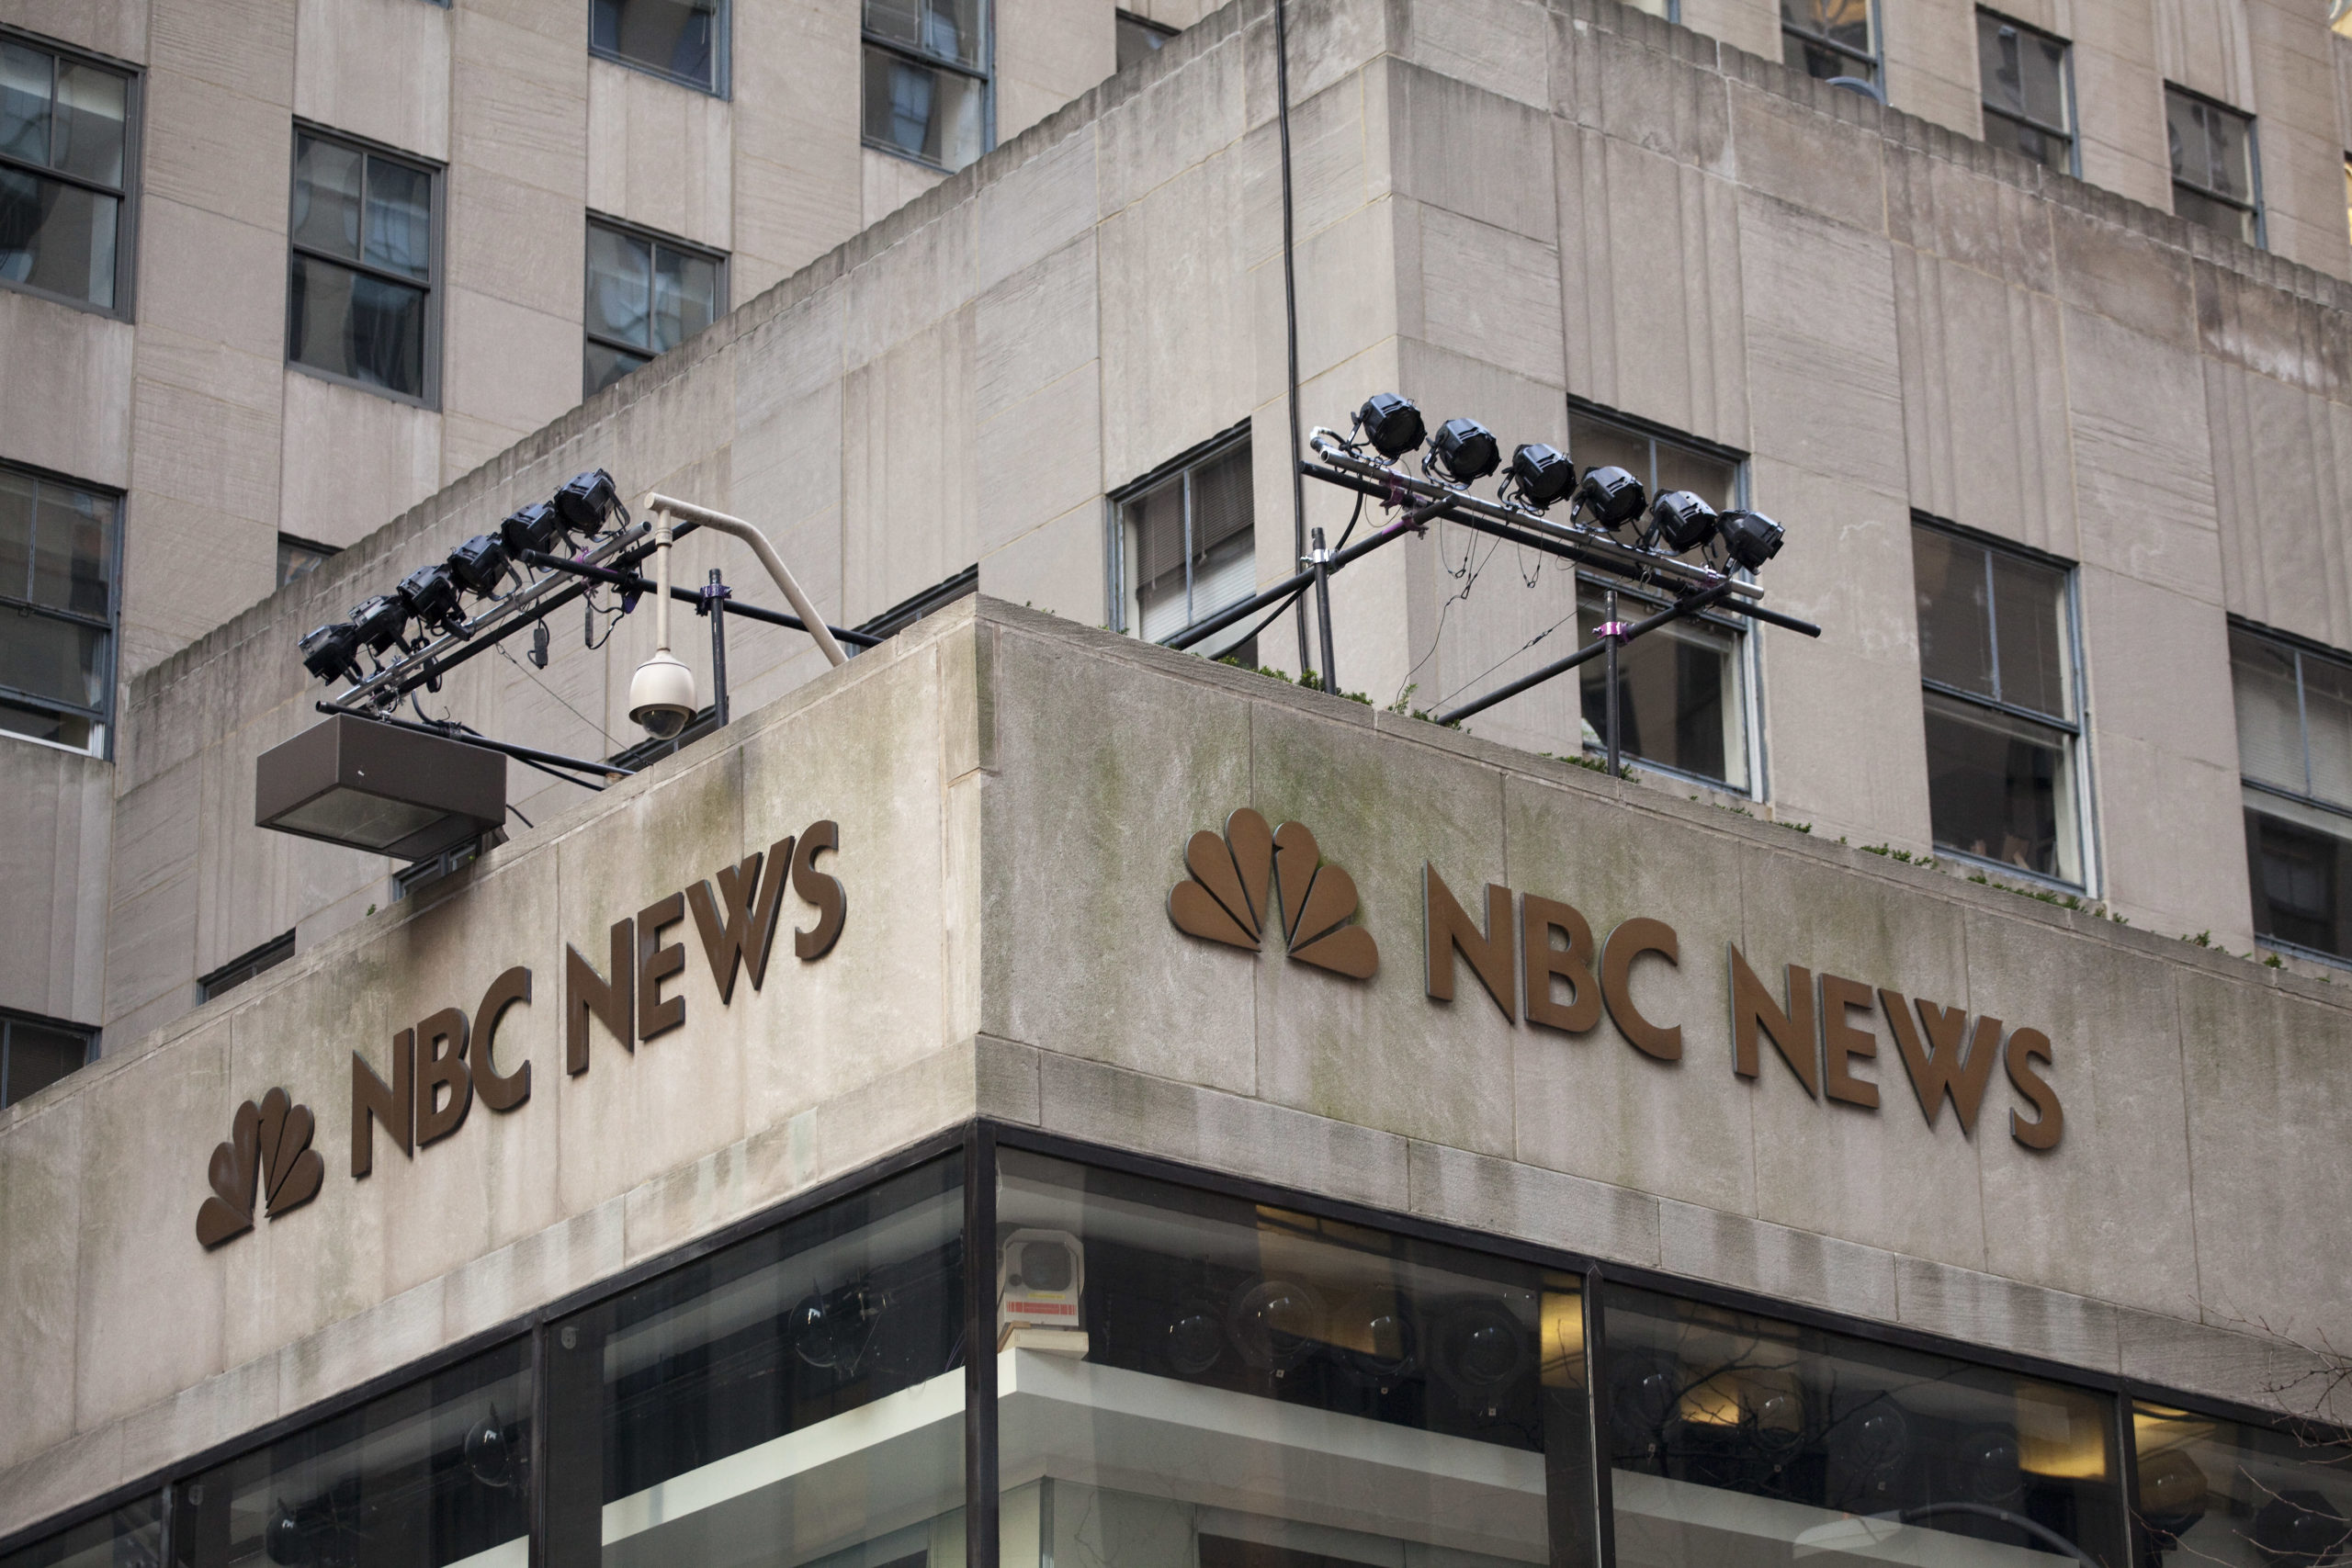 Noah Oppenheim's passing-over at NBC News shocks insiders